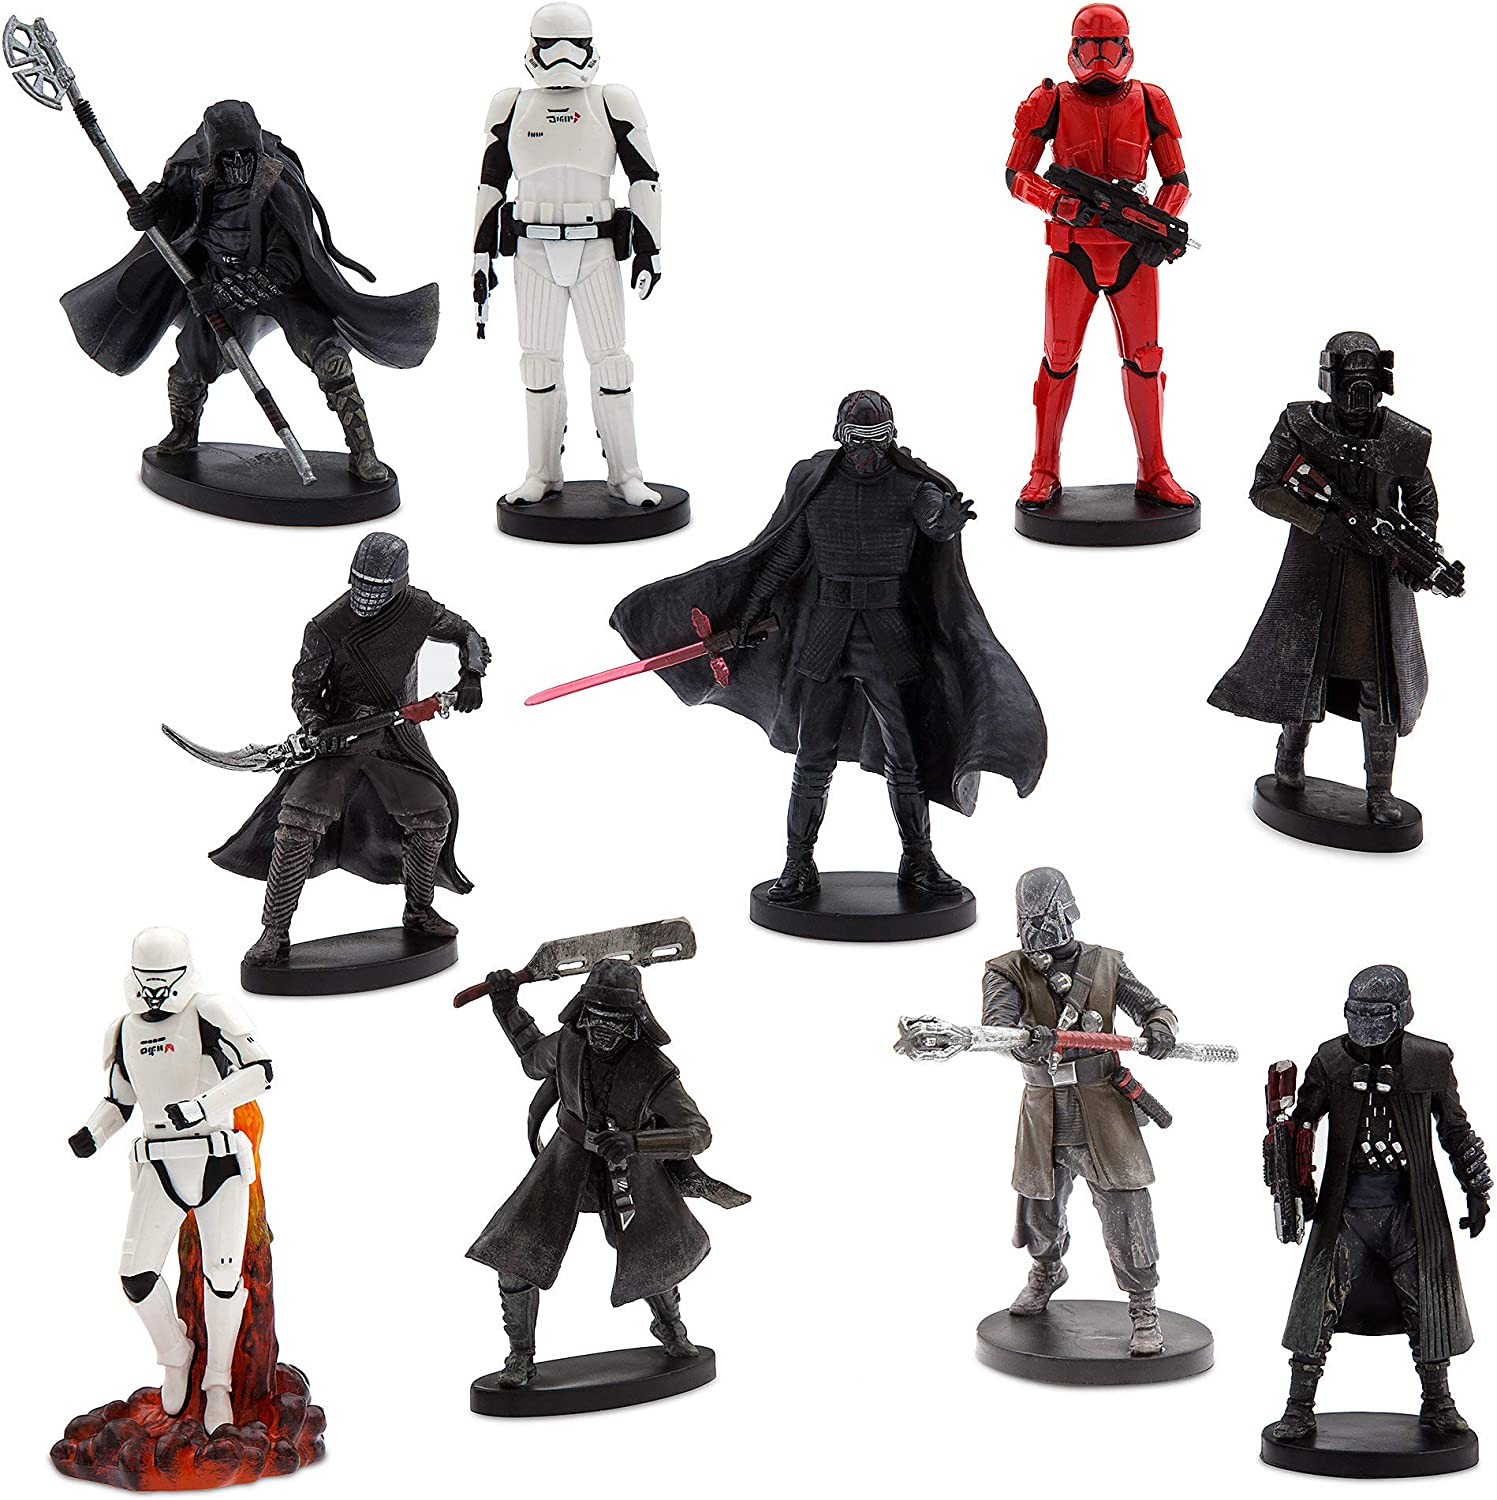 Amazon Com Star Wars The Rise Of Skywalker Deluxe Figure Play Set The First Order Toys Games